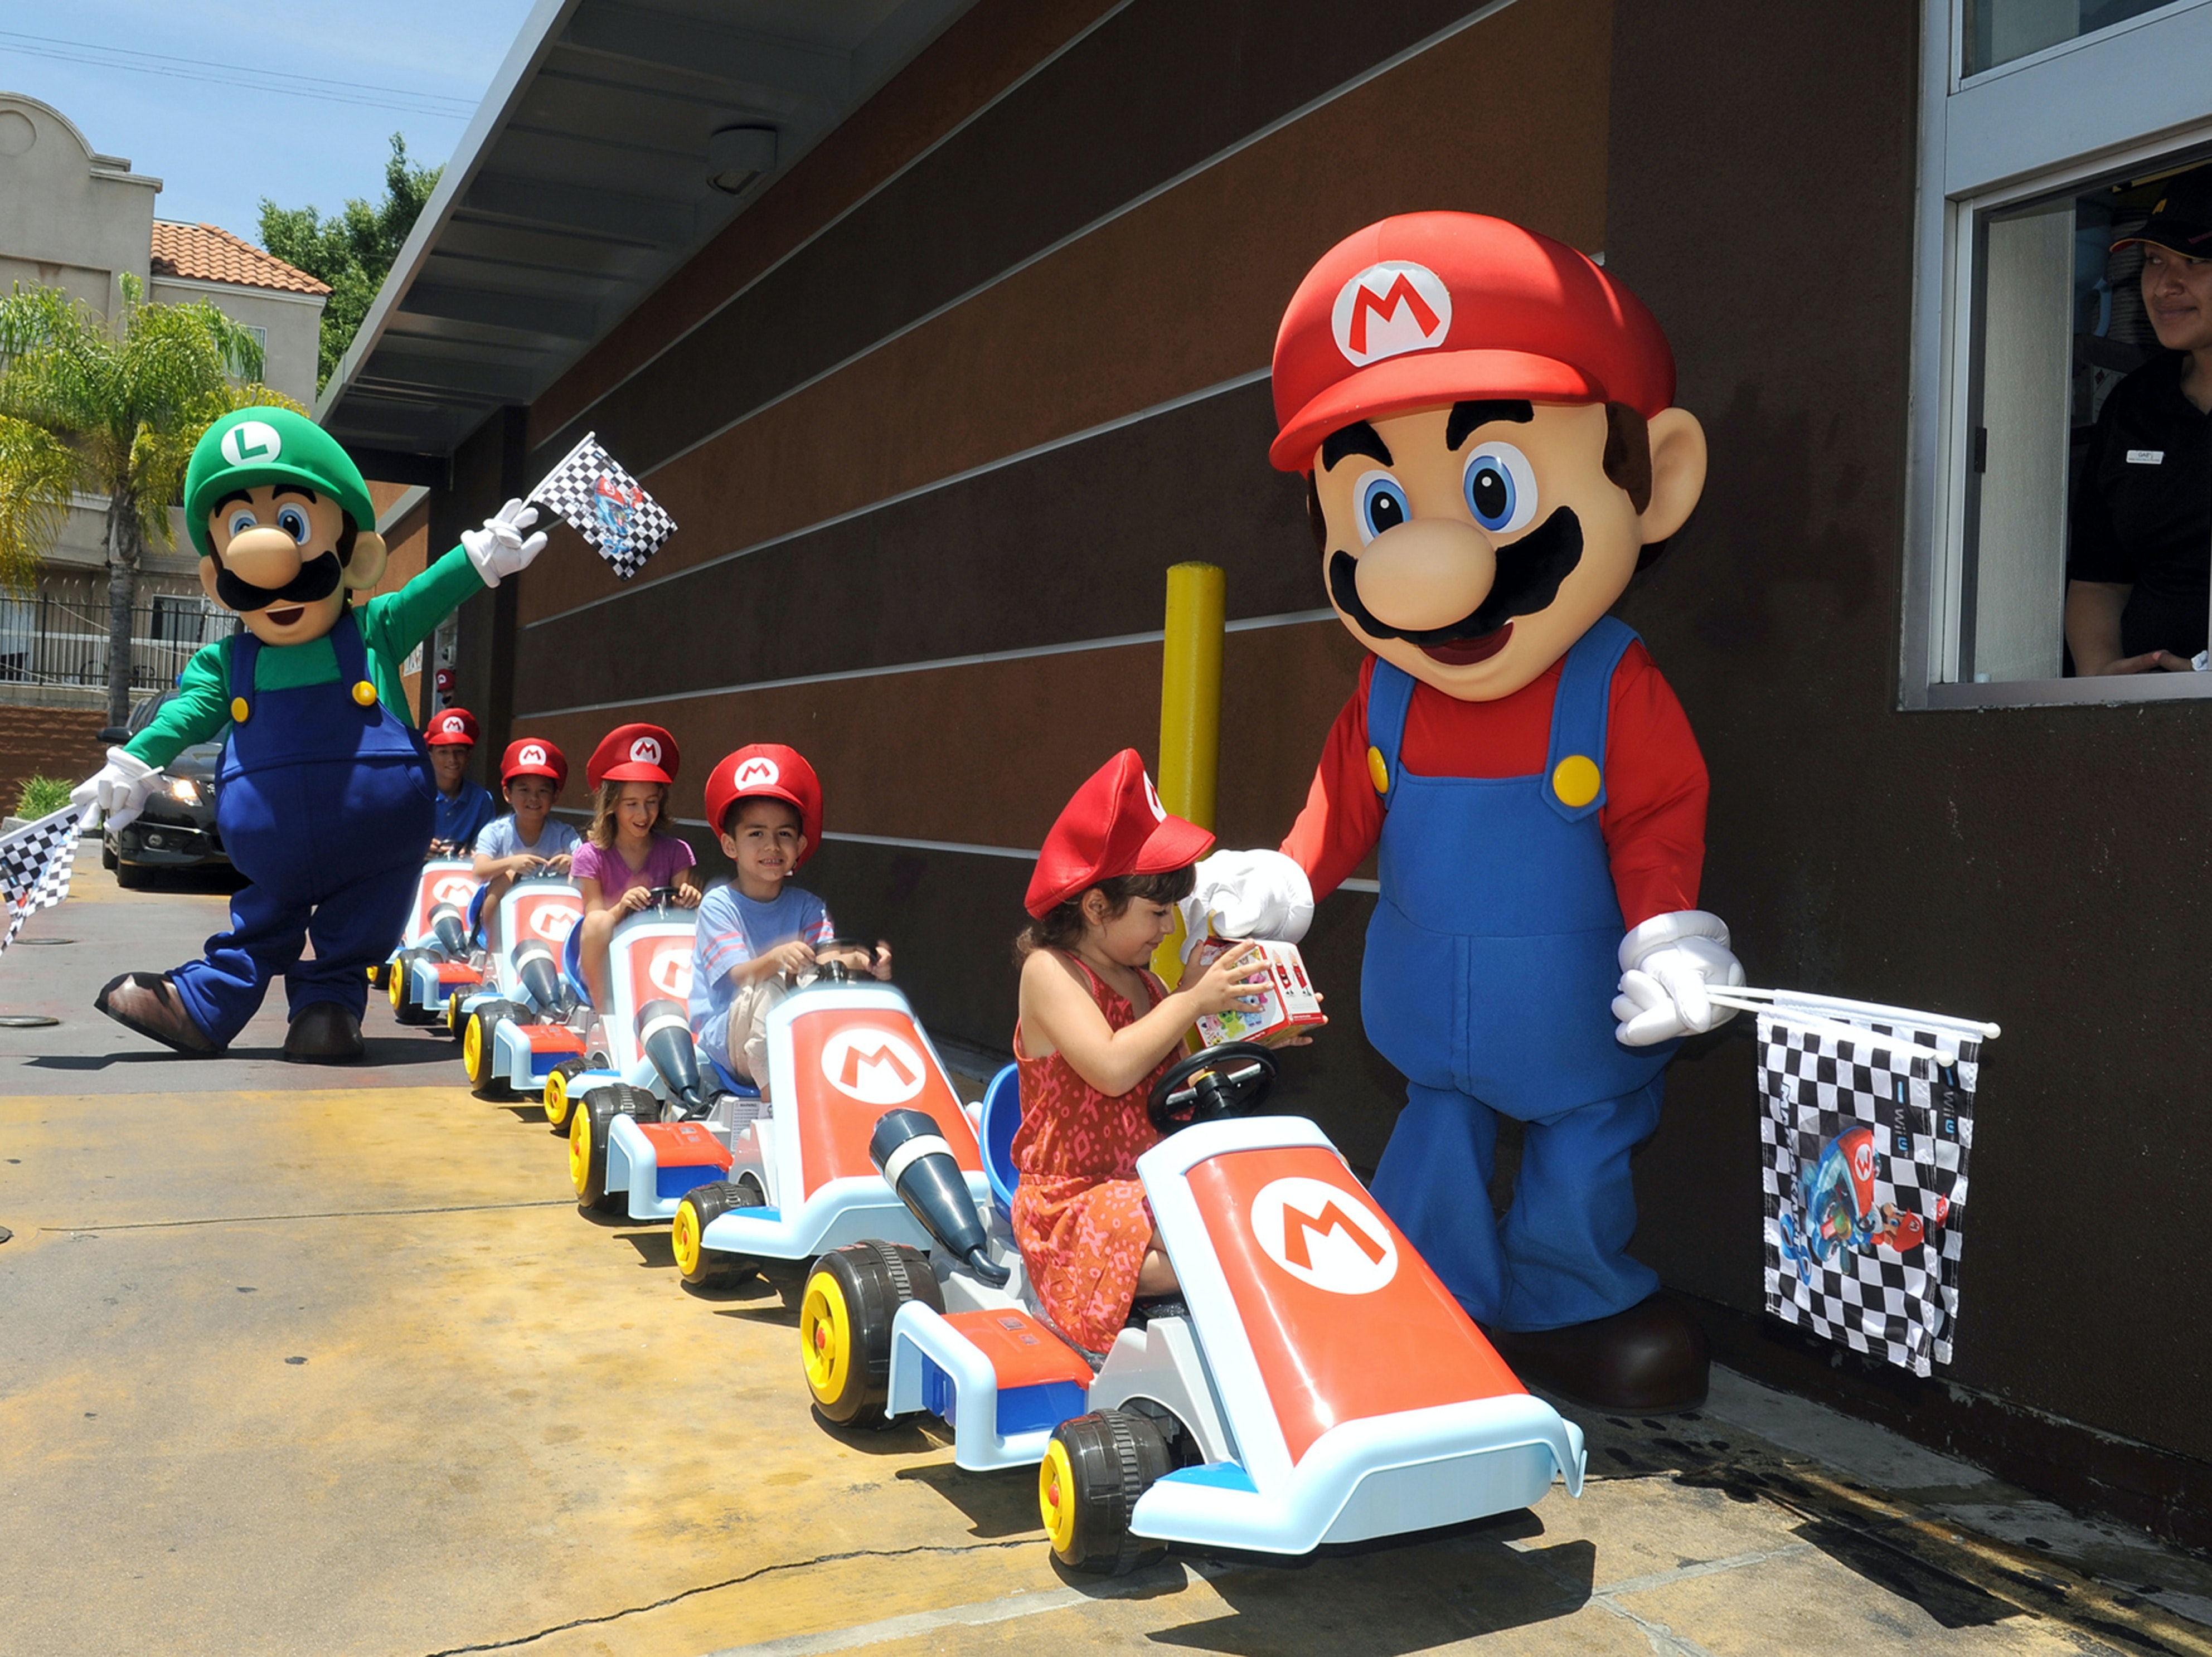 23 Ludicrous Suggestions for Nintendo Theme Park Attractions